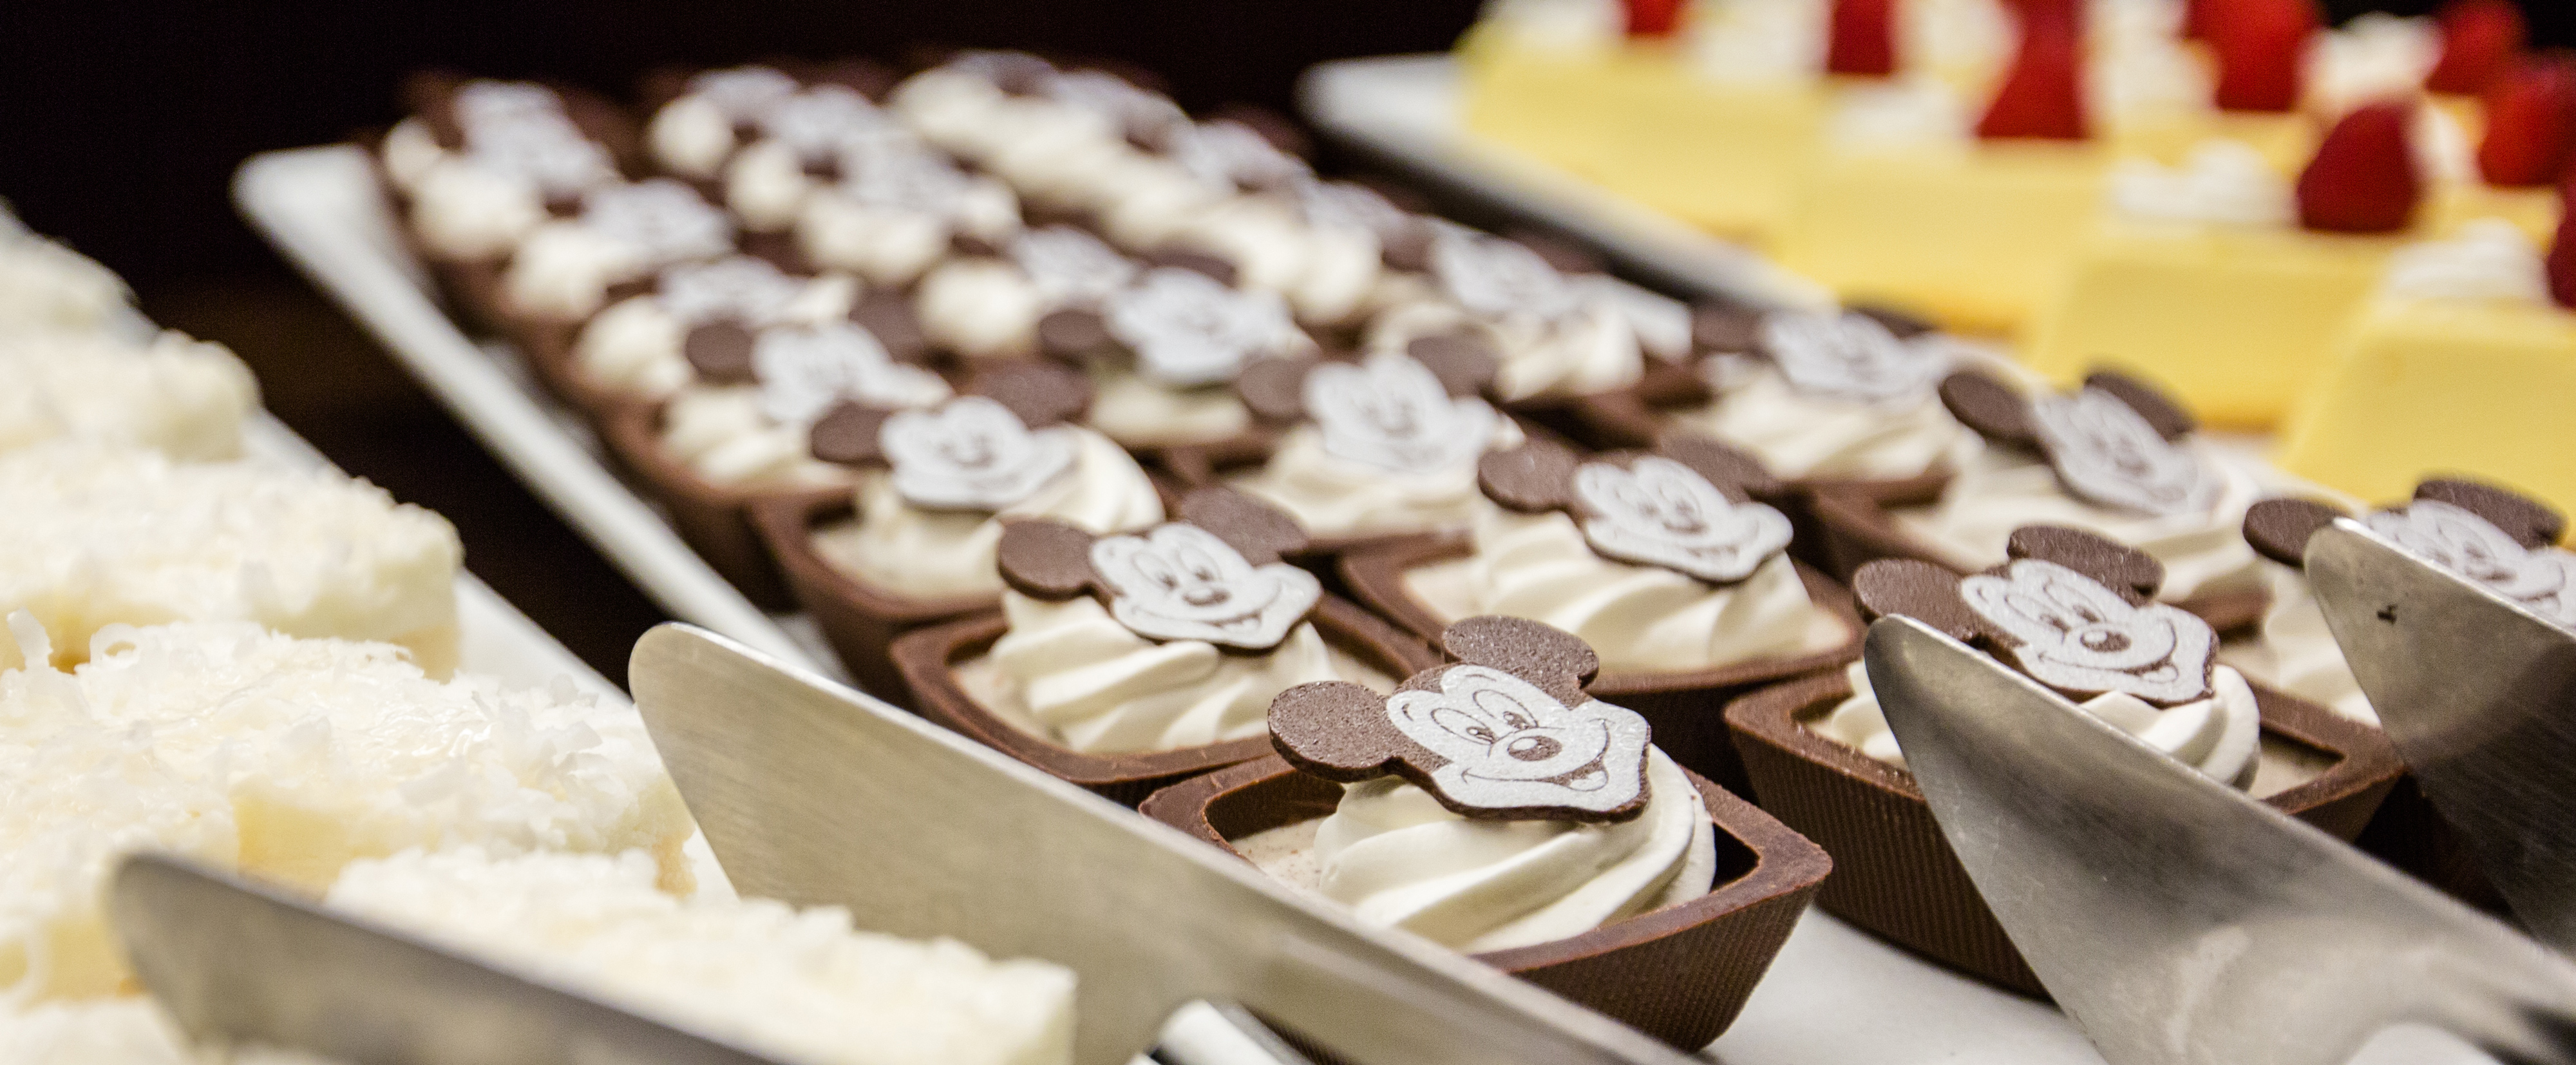 Chocolate Mickey faces decorate rows of square chocolate shells filled with white cream